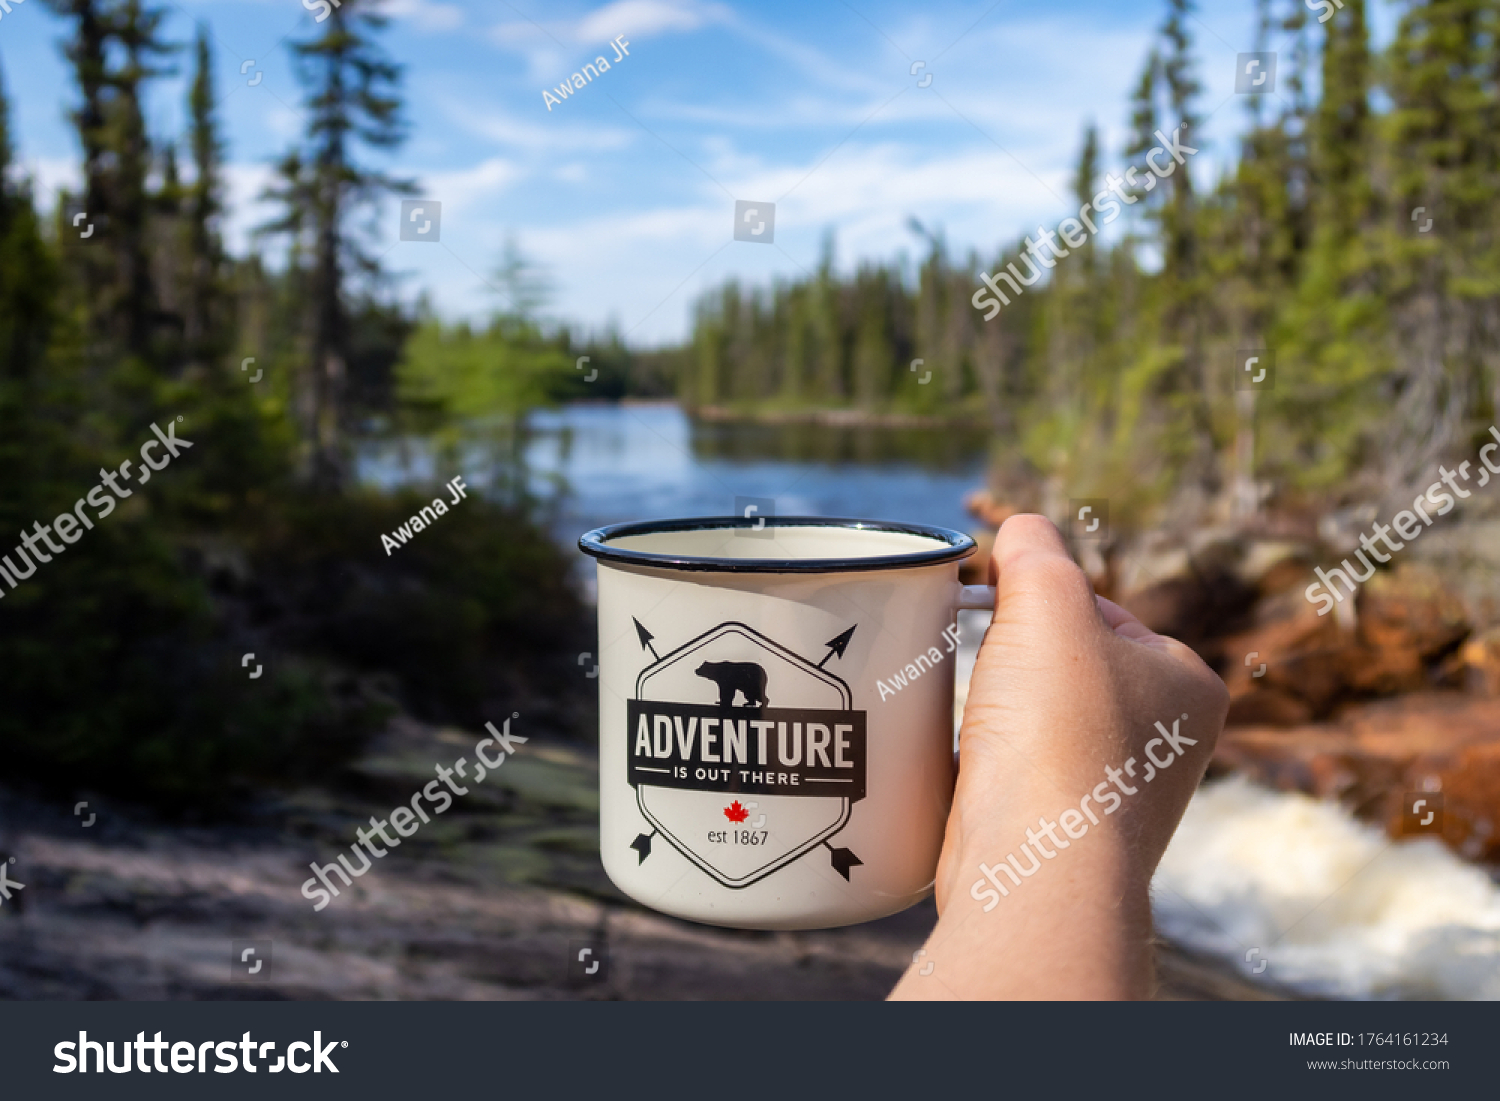 stock-photo-mug-with-the-inscription-adv